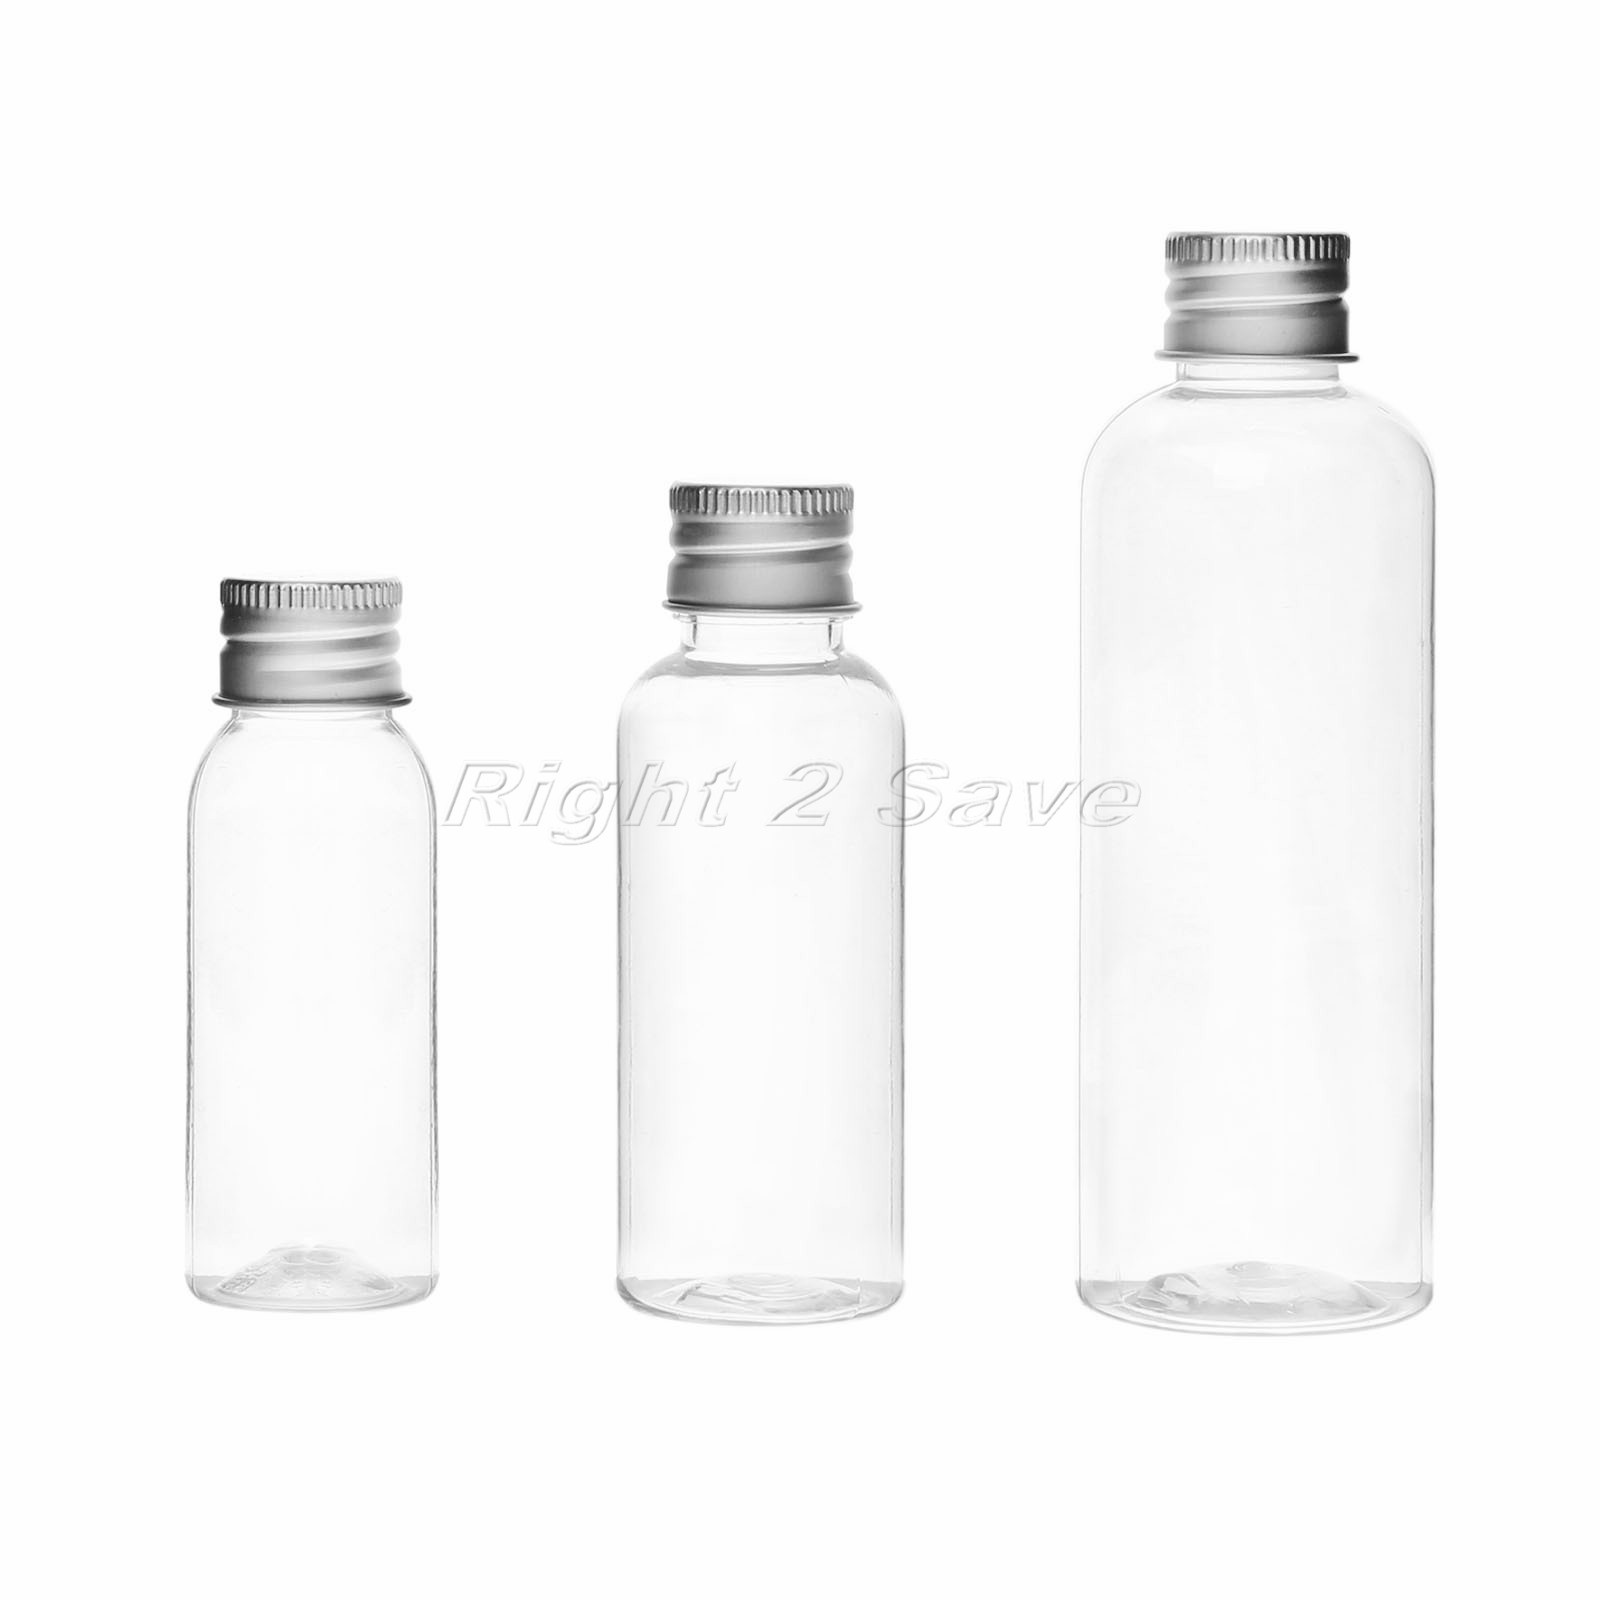 5PCS 30ML/50ML/100ML Plastic Bottle with Aluminum screw cap plug Cosmetic container travel kits portable PET lotion cream 5pcs 5 10 15 20 30 50ml new shape pet e liquid dropper bottle with normal screw cap and plastic needle